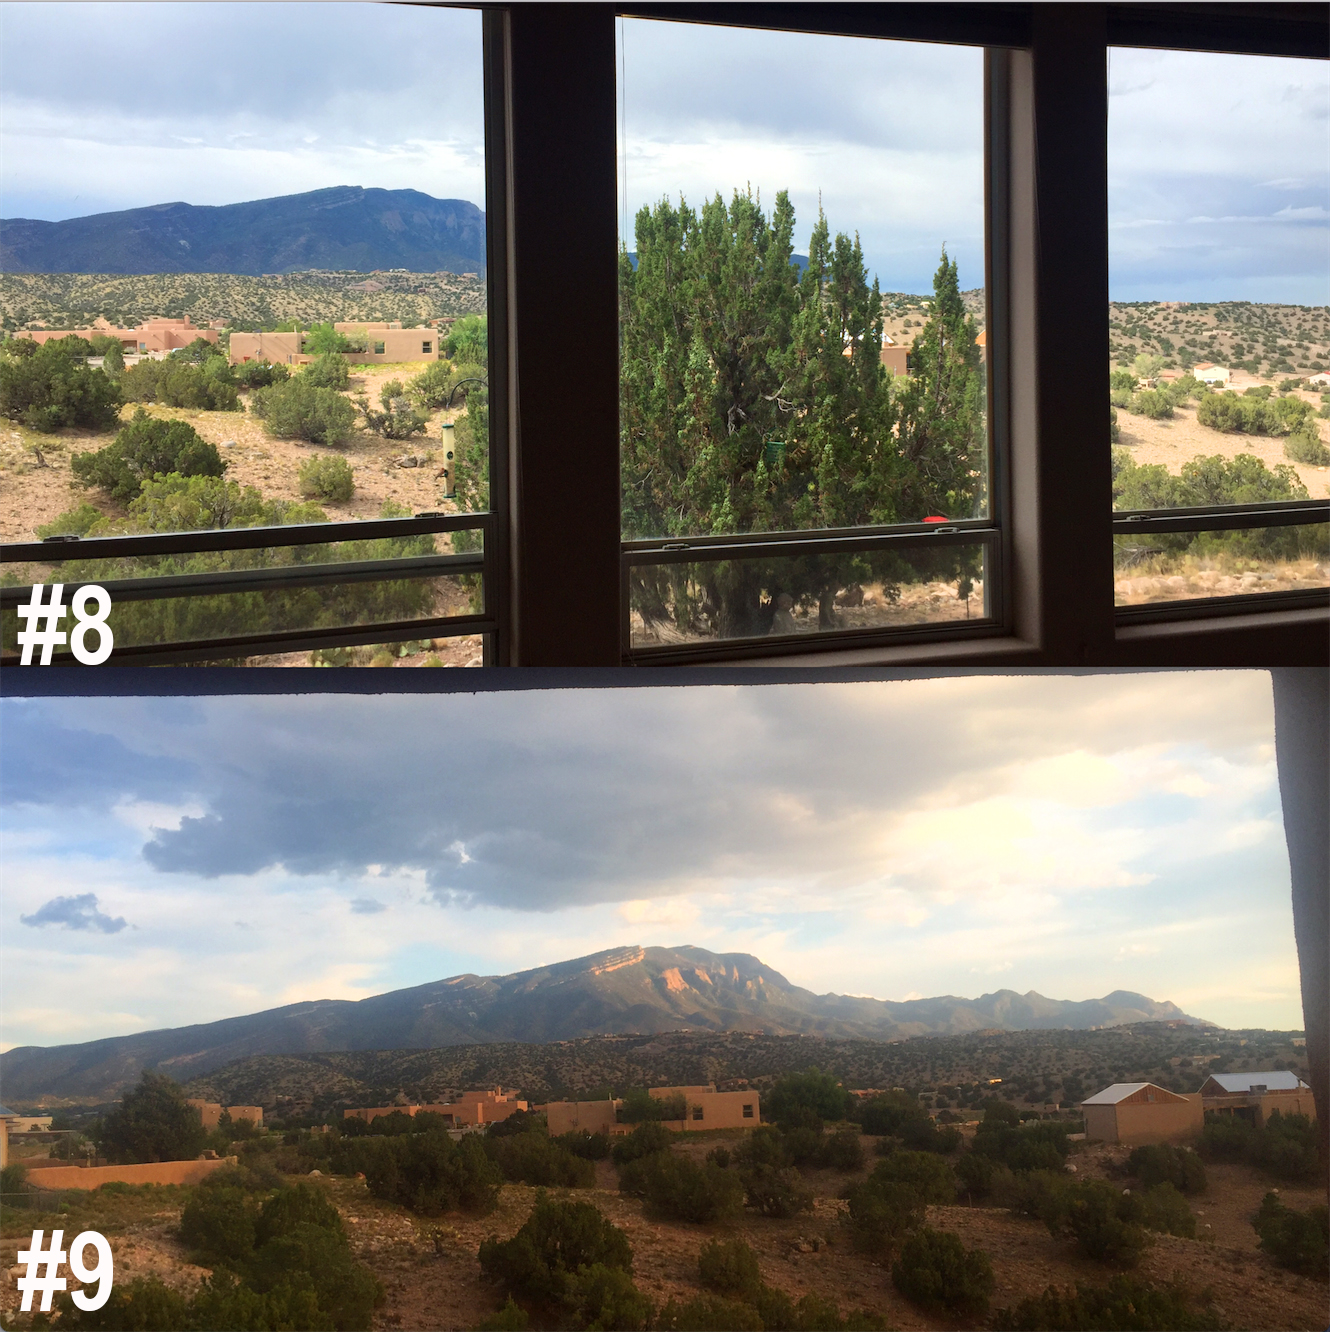 #8.I stayed with a brilliant scientist yogini and her psychologist husband in  Albuquerque, New Mexico.   #9. These were the views from their windows. Their house was on a desert mountain. It felt like another world looking out while discussing psychology over New Mexican food.